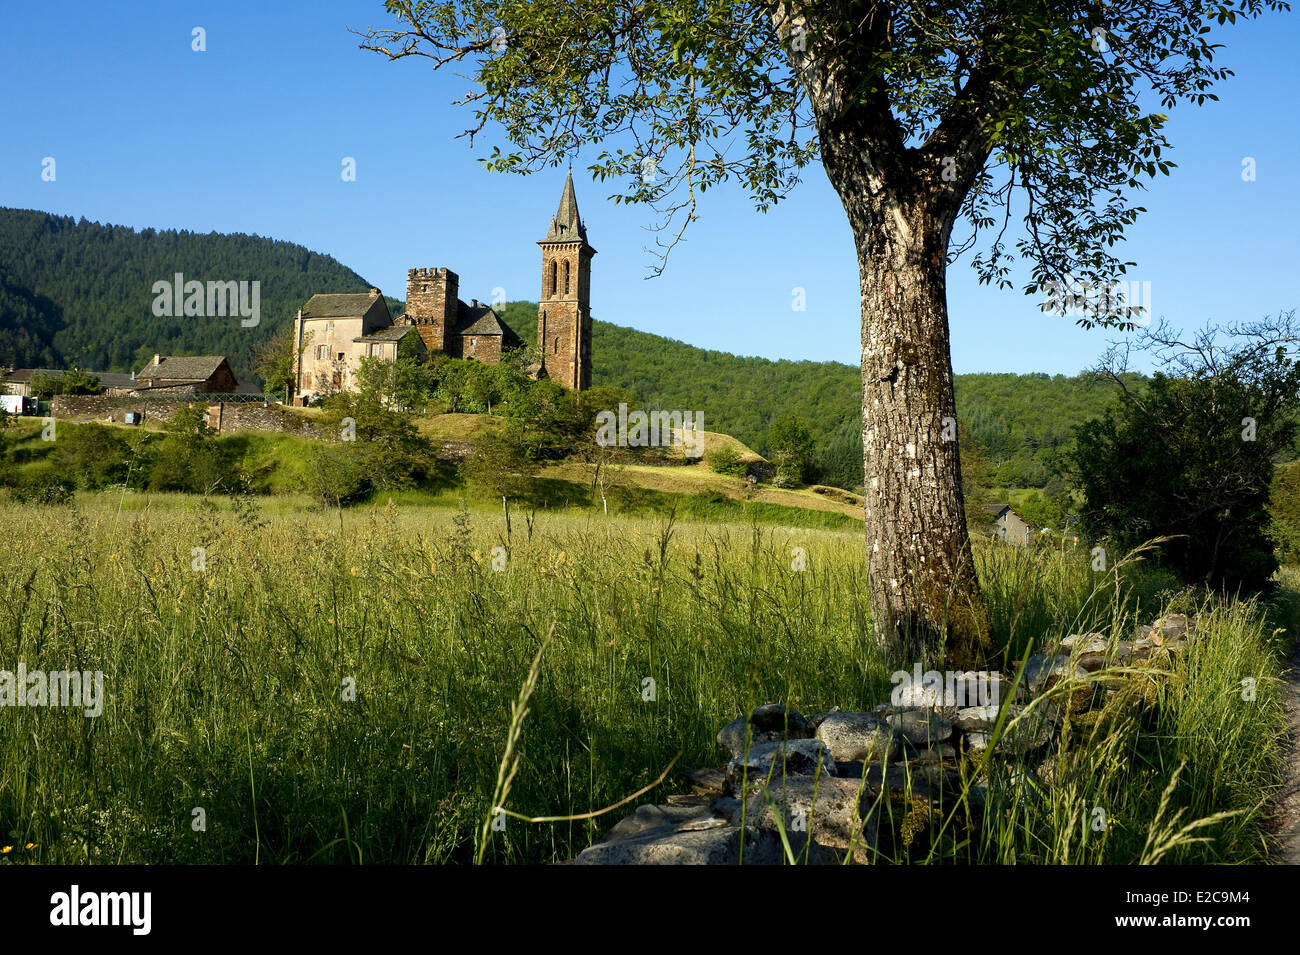 France, Lozere, Bedoues, Collegiate Church of Notre Dame de l'Assomption, fortified church of the 14th century - Stock Image